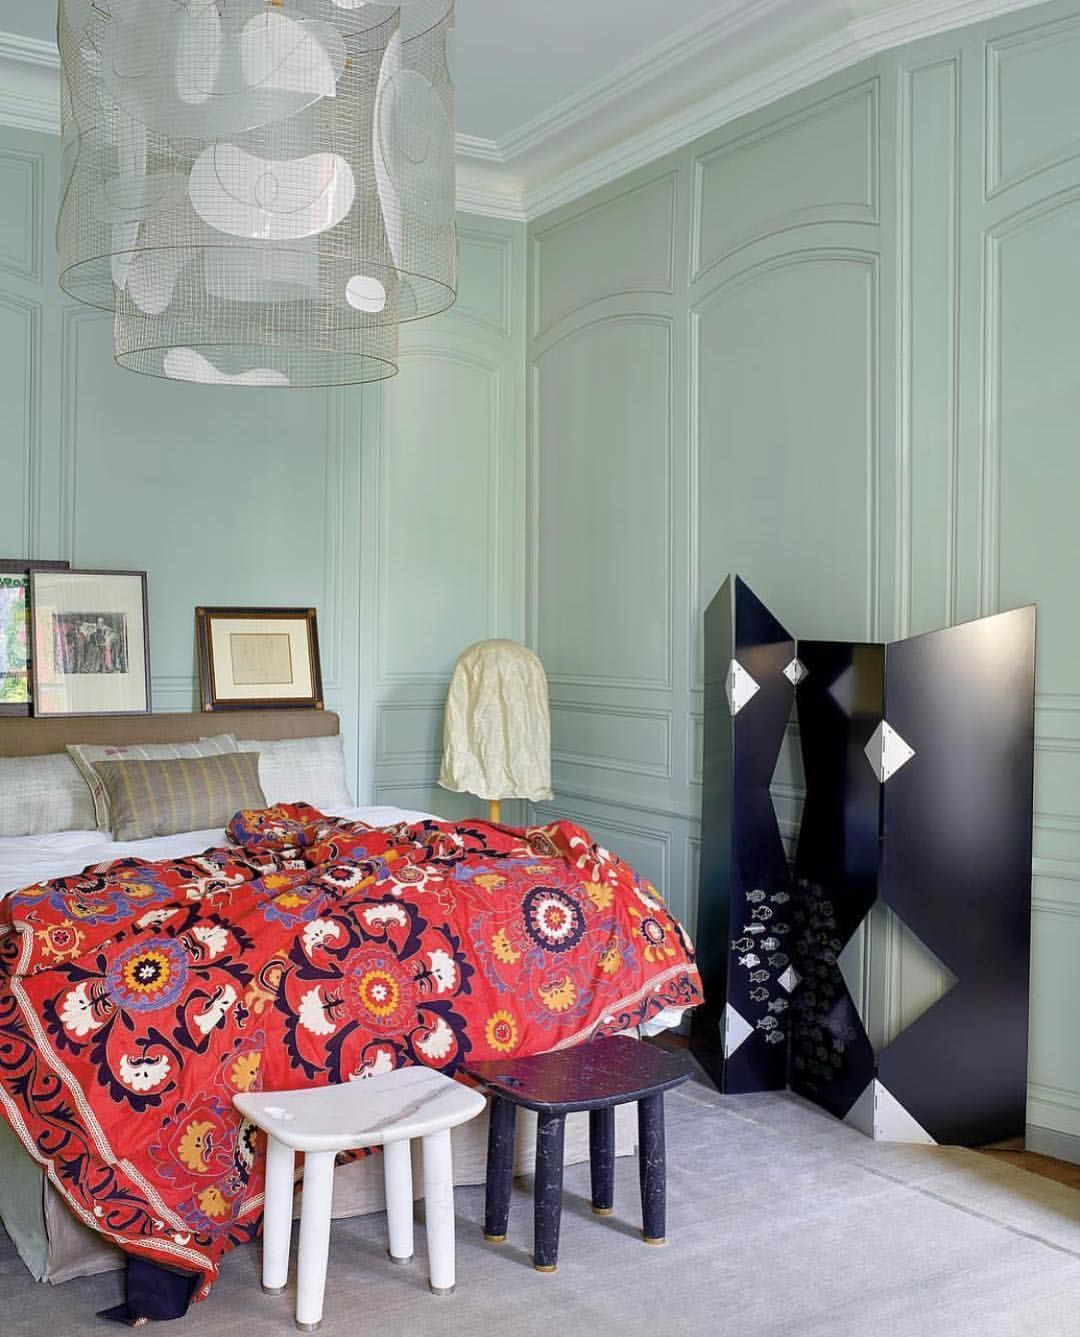 He nytimes style magazine on instagra also interiors in rh pinterest